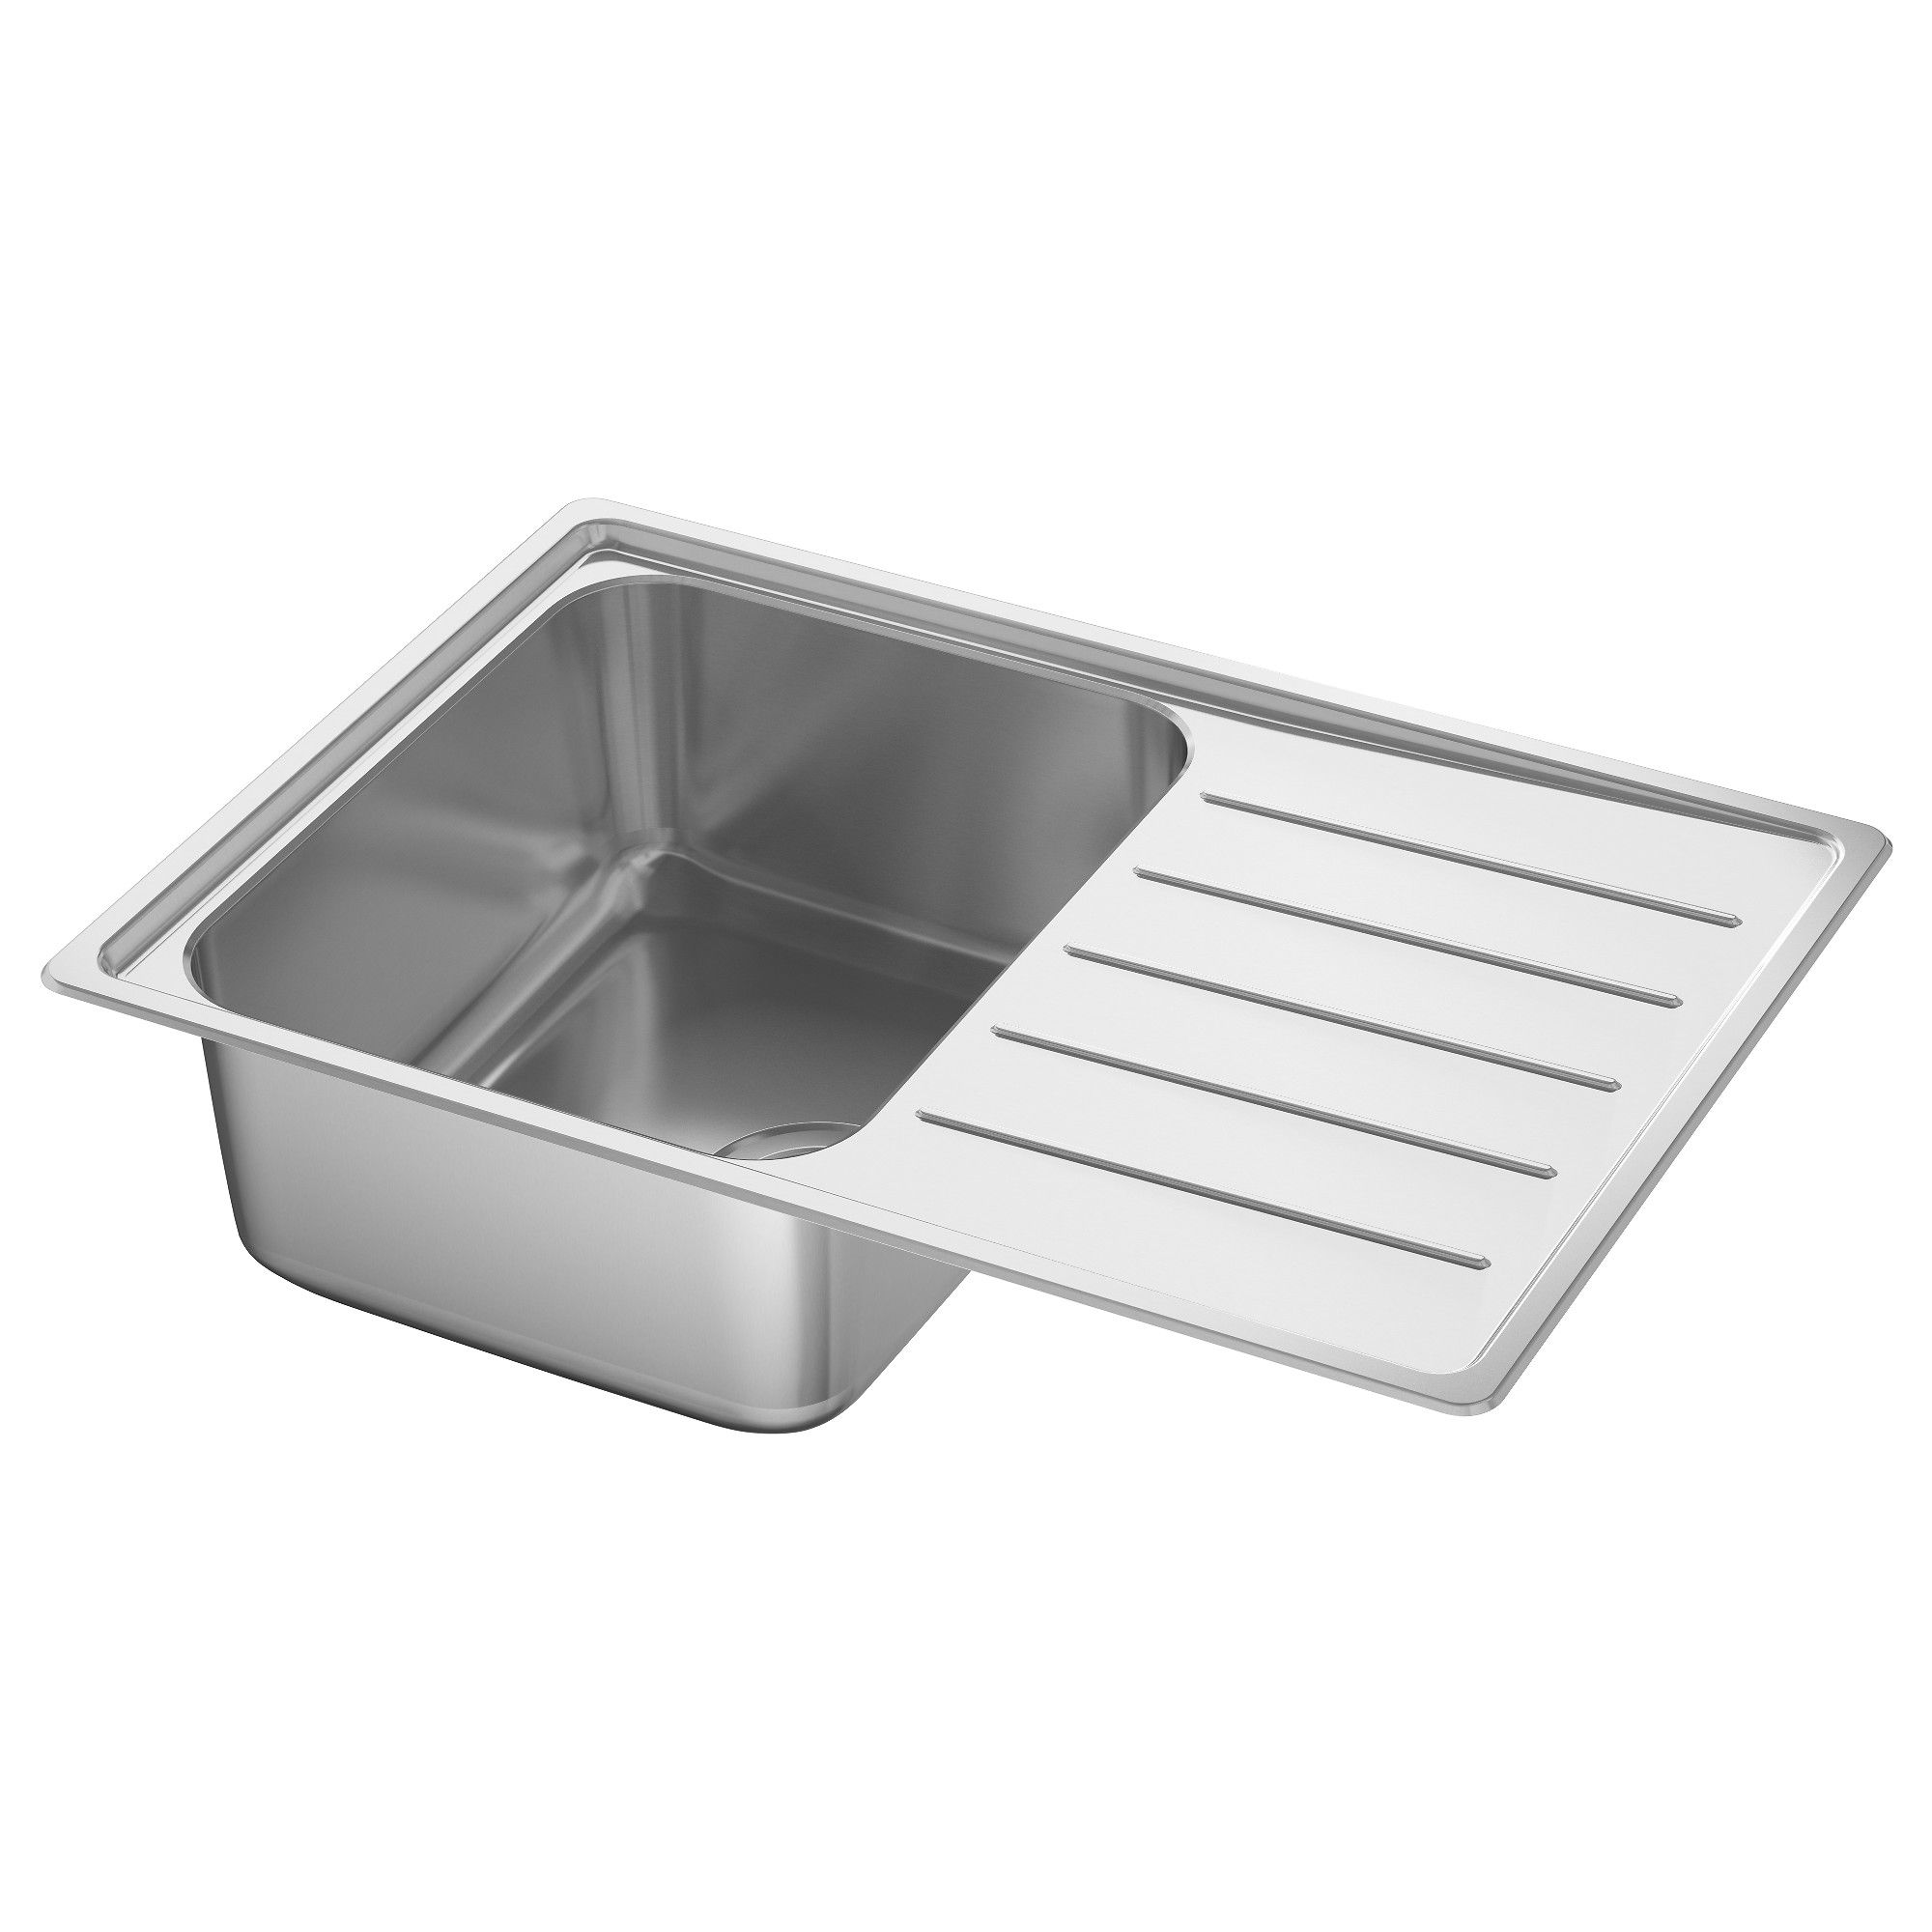 Ikea  Vattudalen Single Bowl Top Mount Sink Stainless Steel